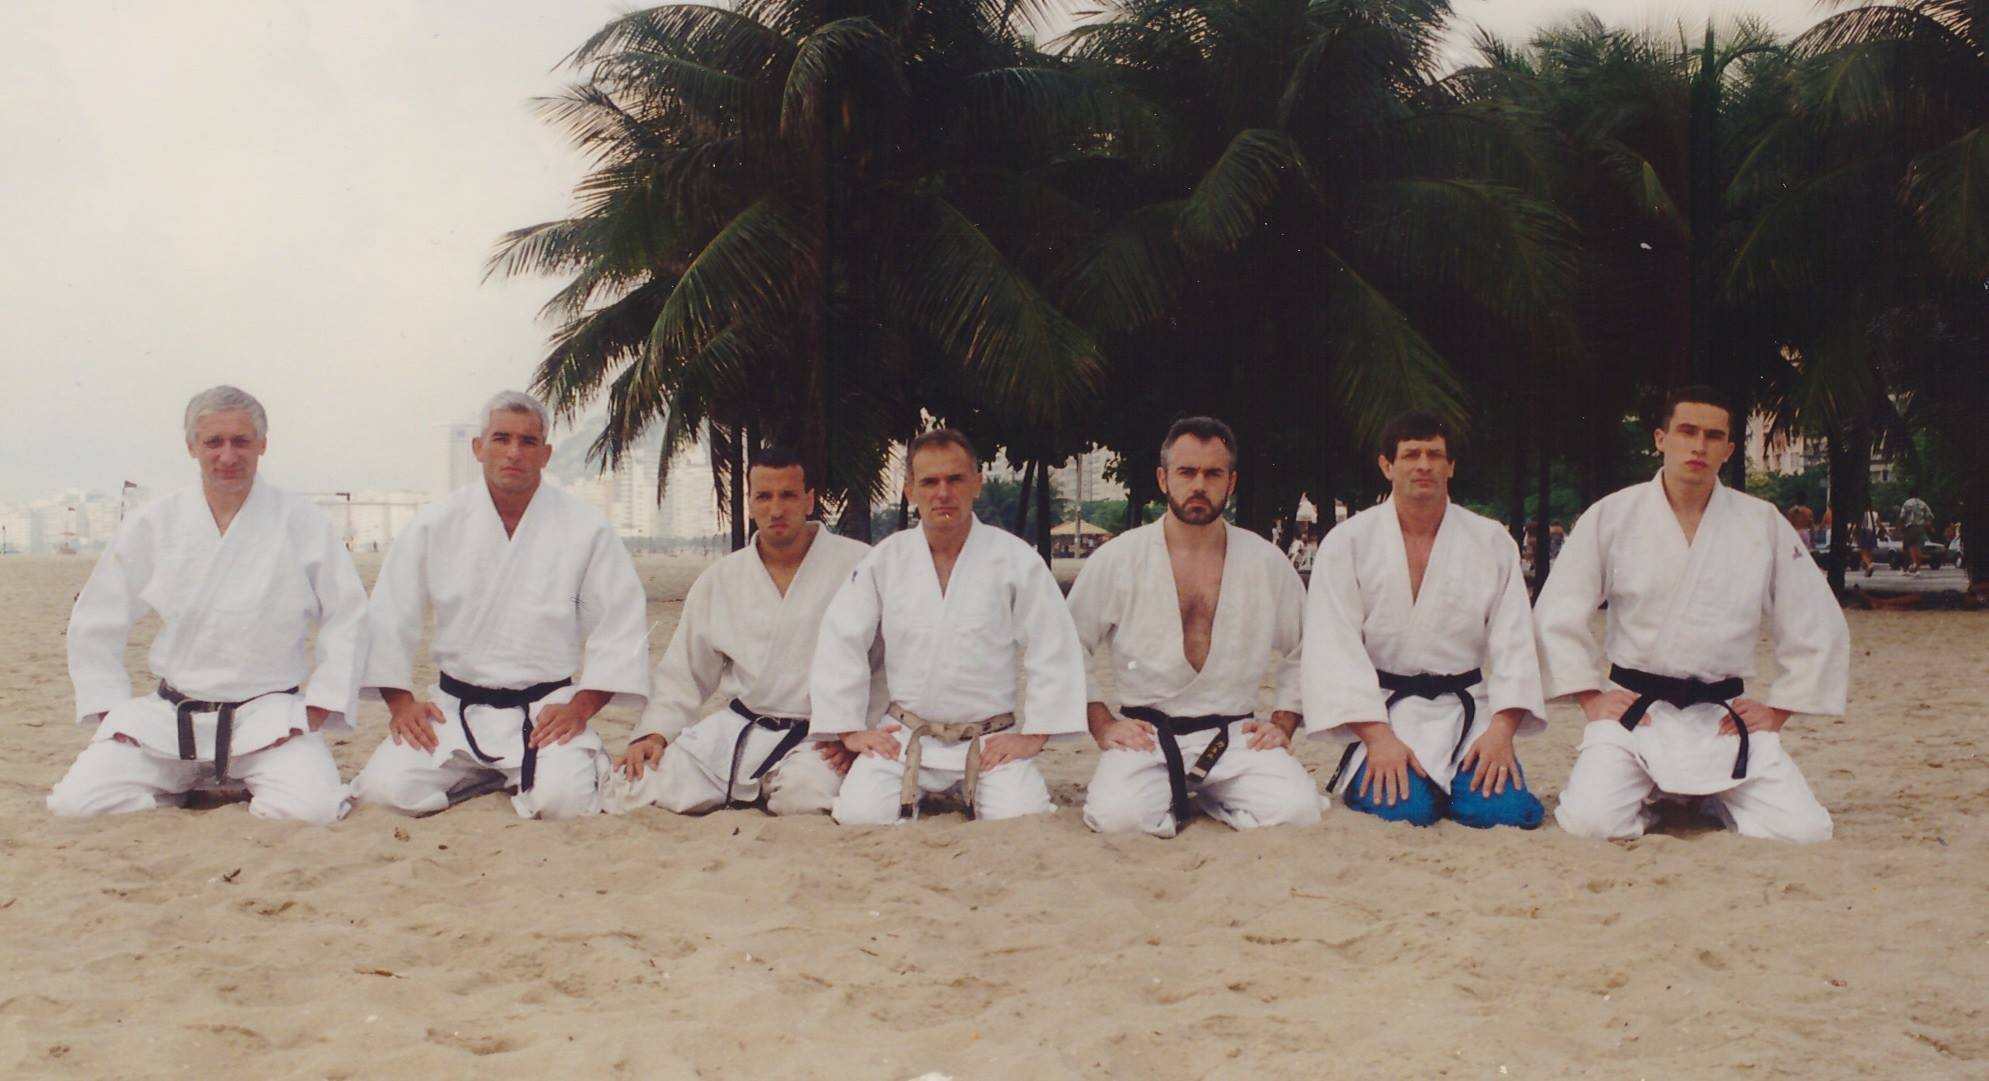 Pioneers: The First Foreigners To Compete At The 1996 Mundials in Rio